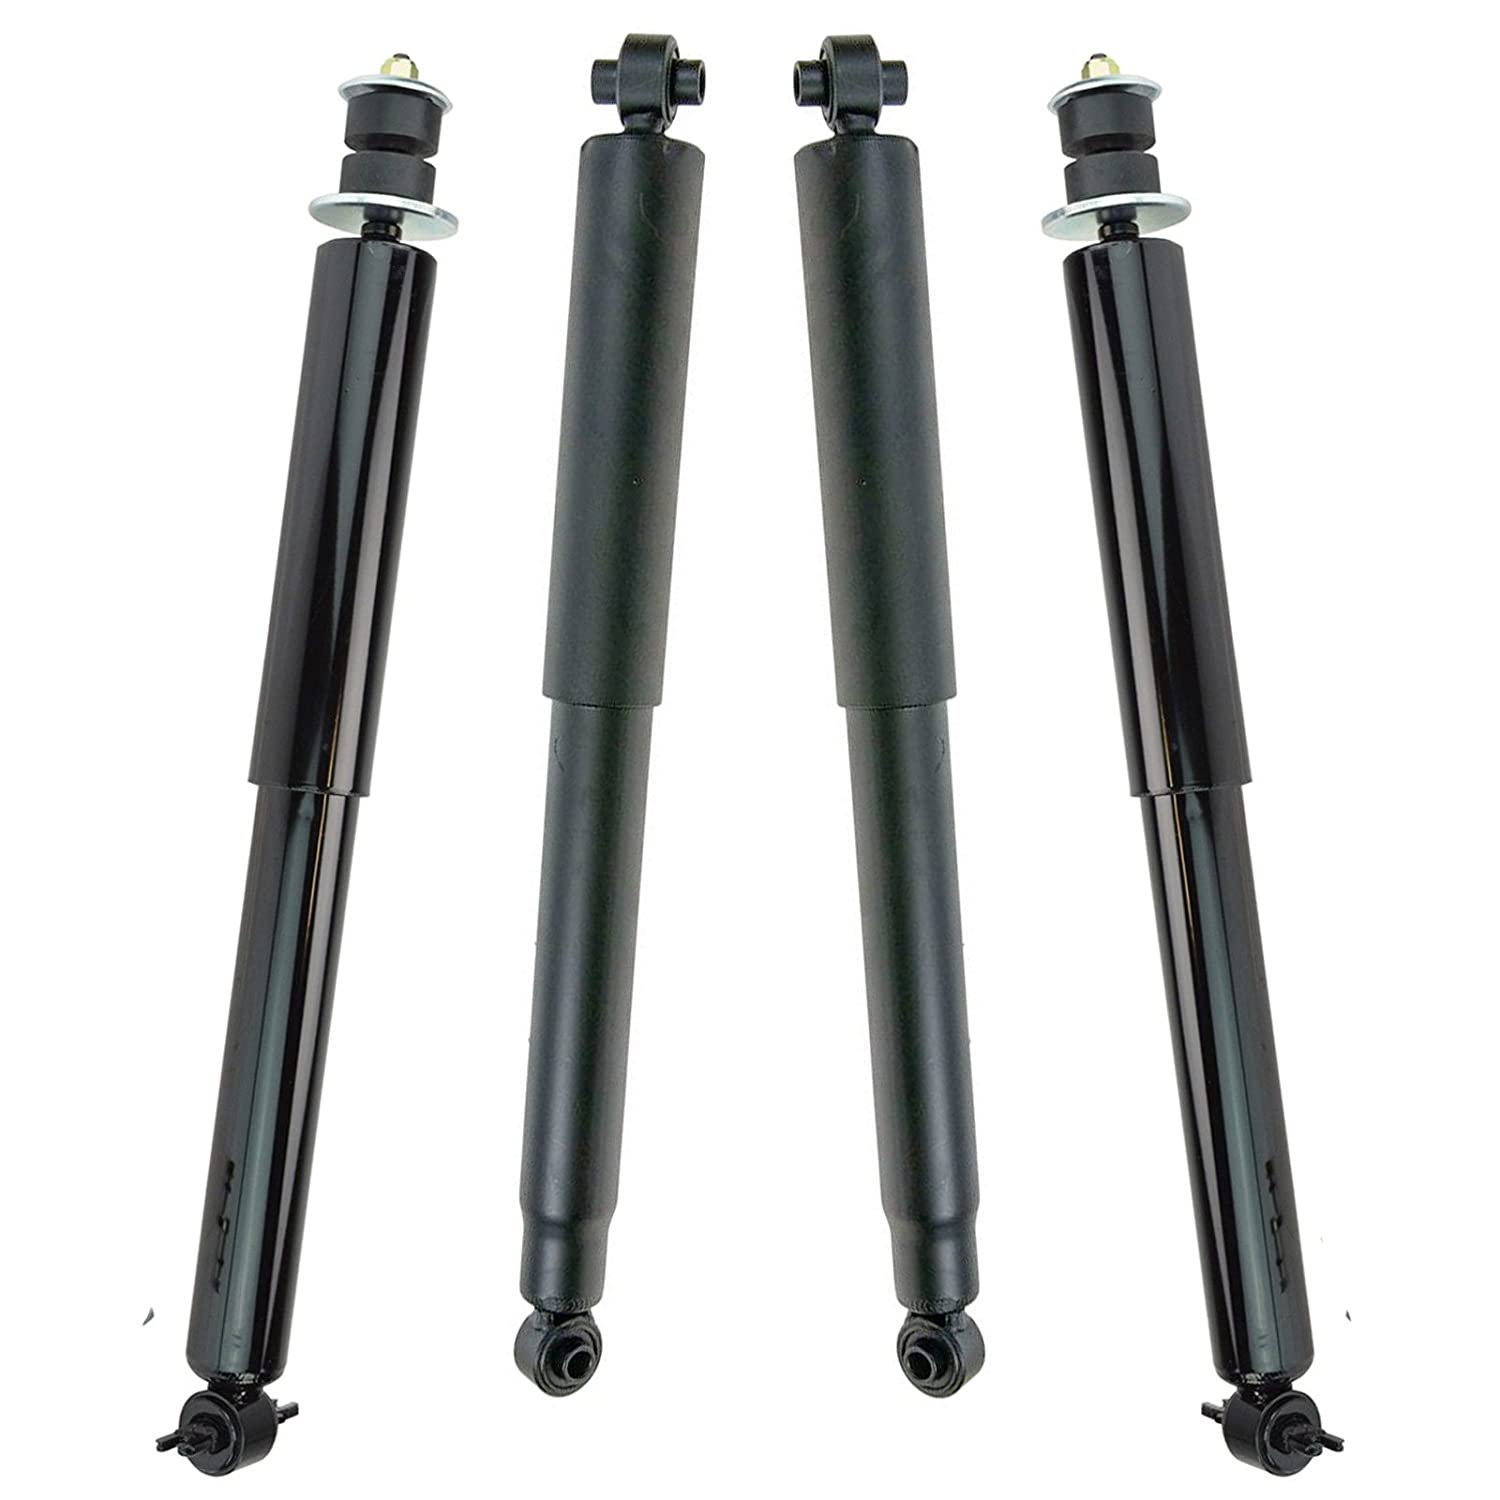 Shock Absorber Kit Front /& Rear Set of 4 for 99-04 Jeep Grand Cherokee